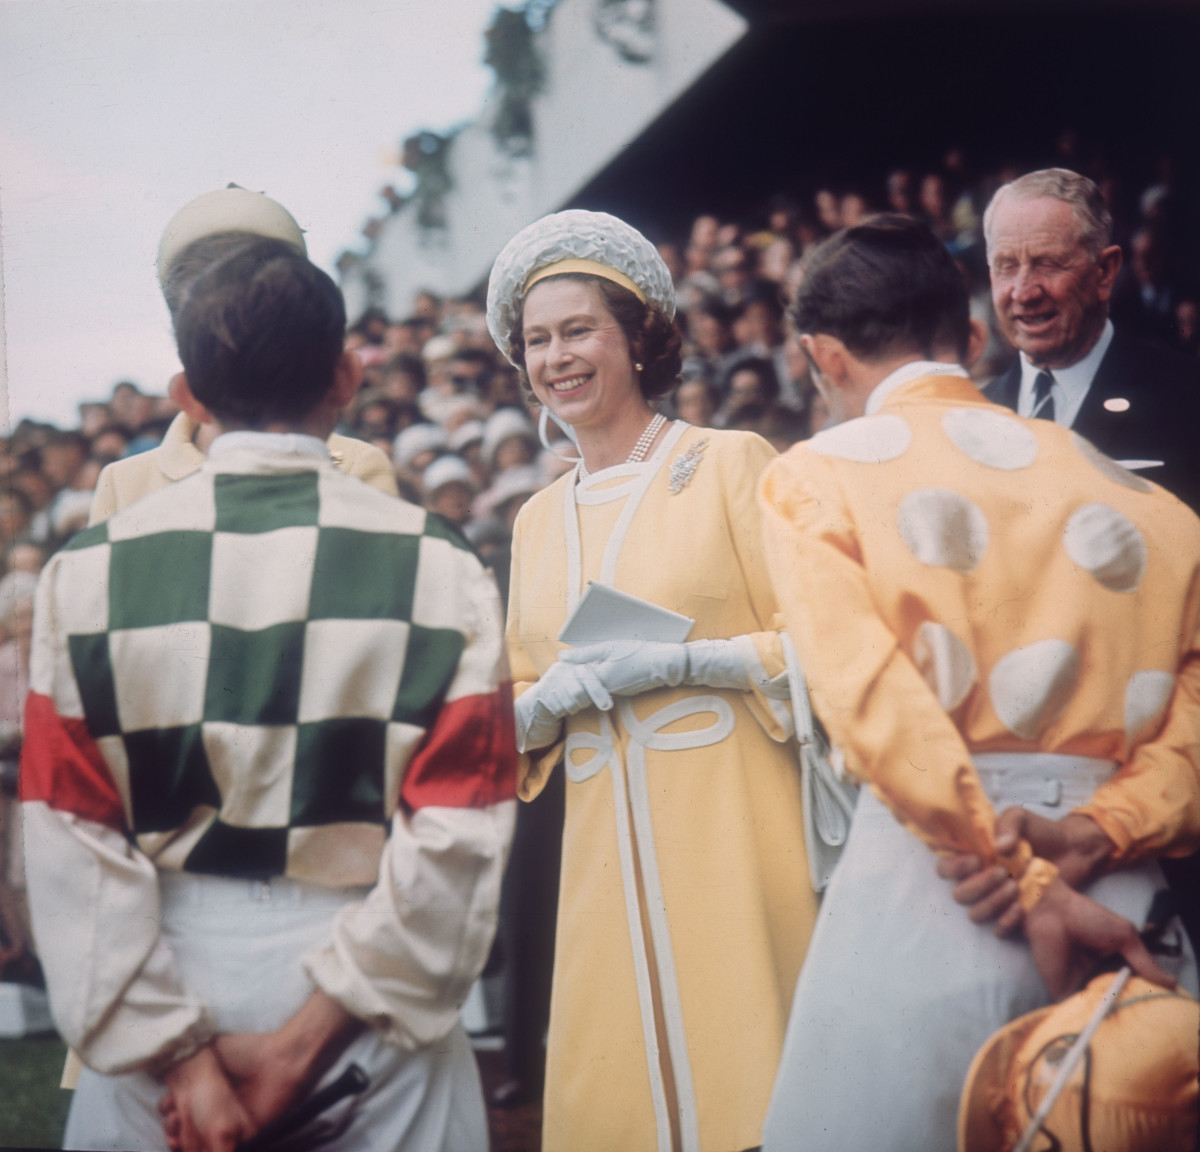 Queen Elizabeth II chats with jockeys Ron Quinton and Hilton Cope before the Queen Elizabeth Stakes at Randwick racecourse near Sydney, during her tour of Australia on April 1, 1970